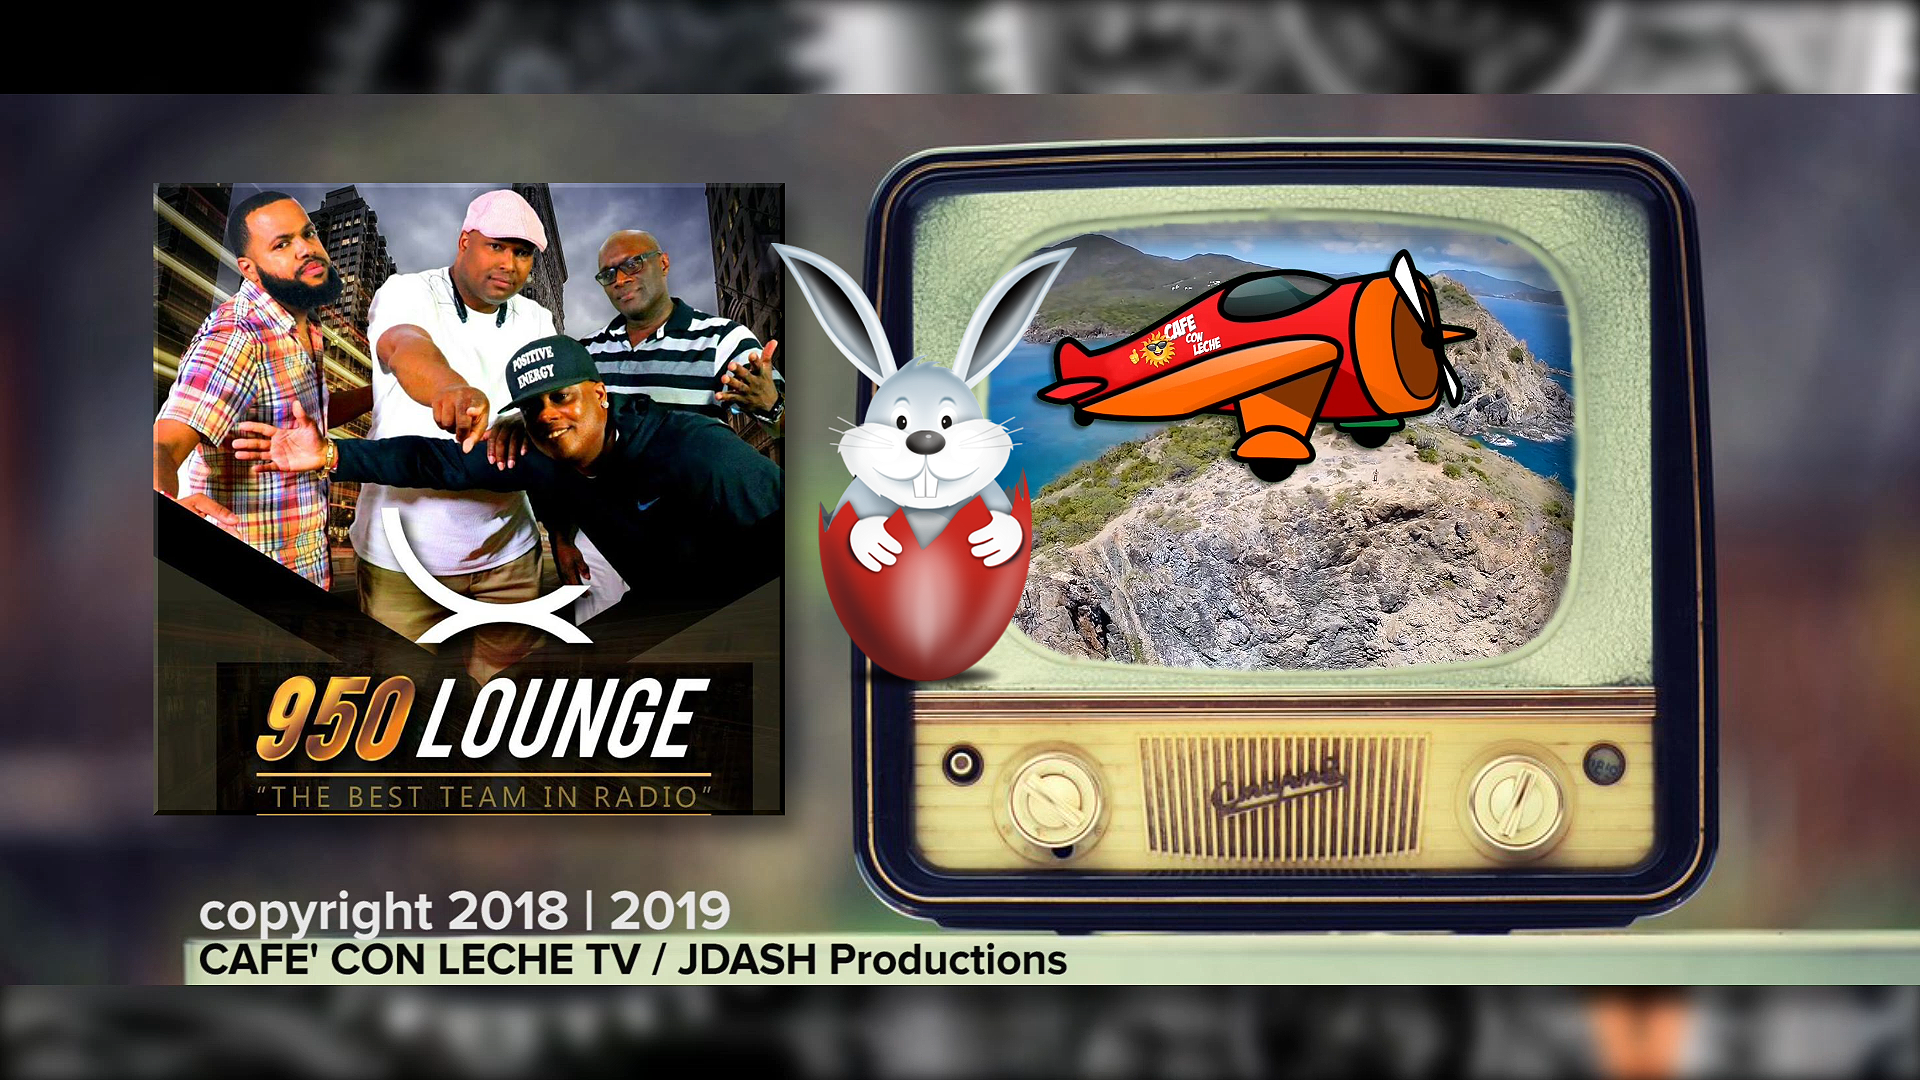 Cafe Con Leche Ep.306 EASTER SPECIAL @950 Lounge Radio